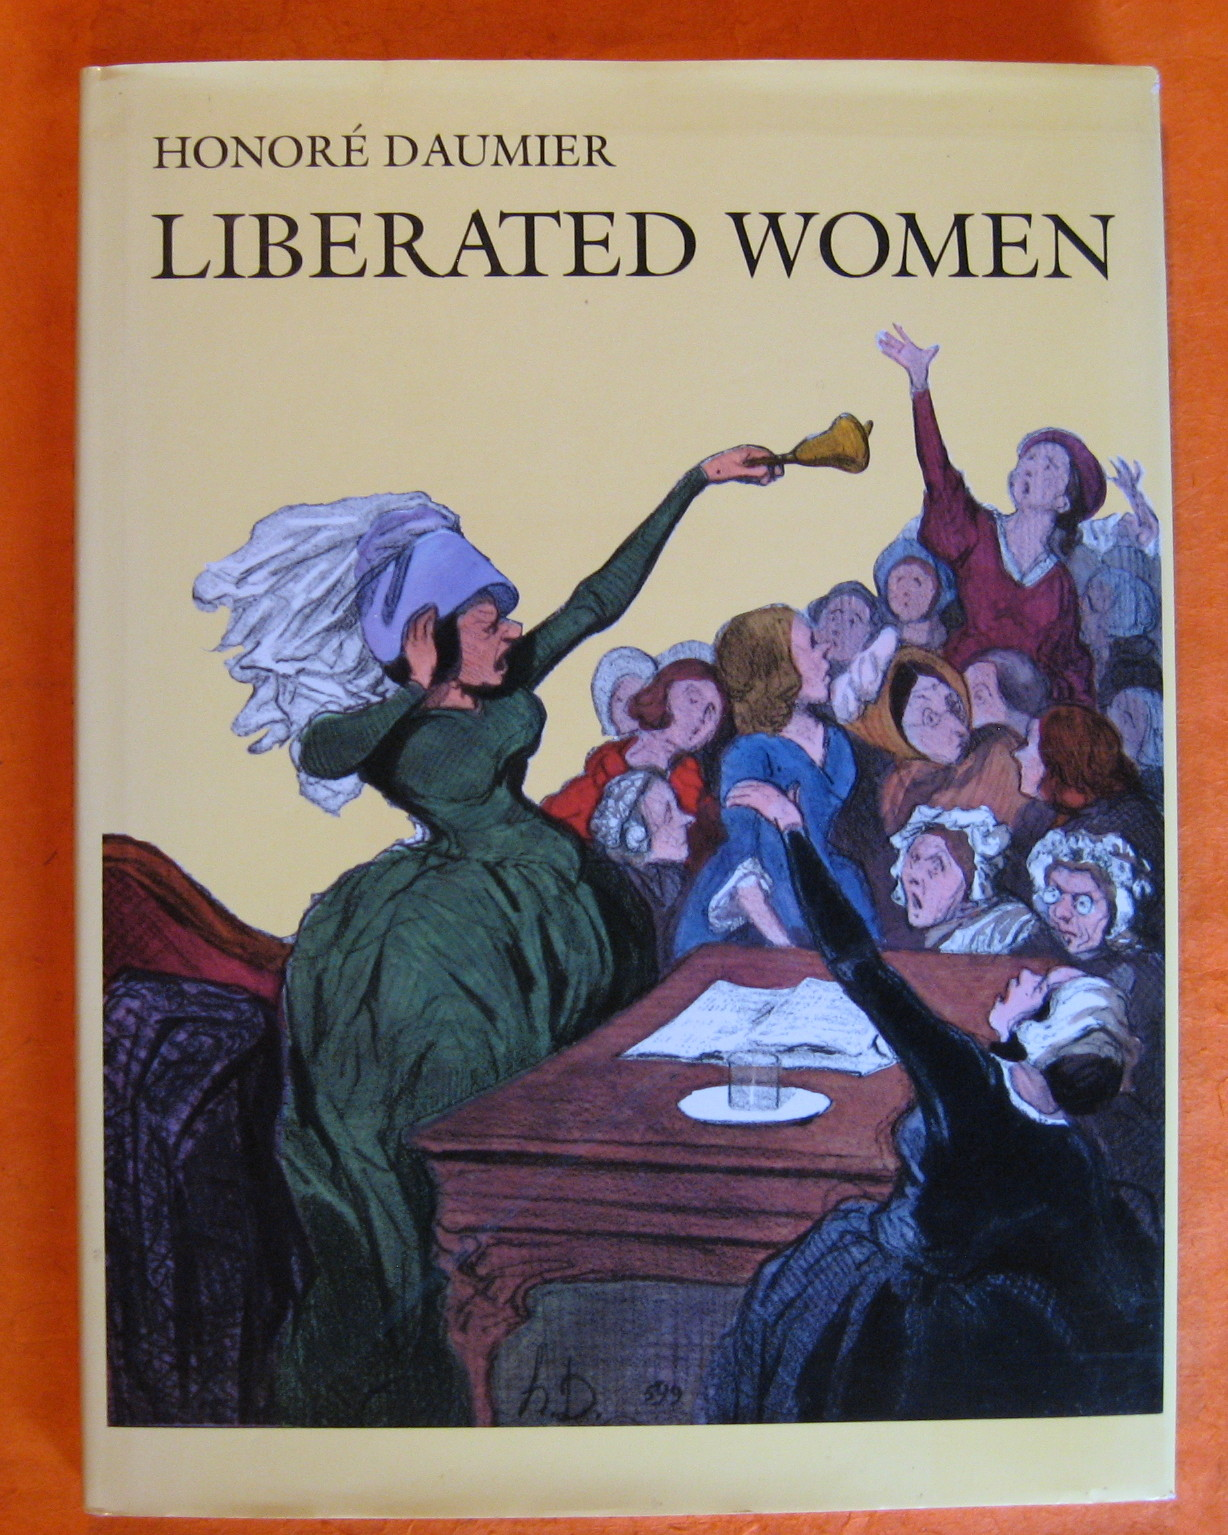 Liberated Women: Bluestockings and Socialists, Daumier< Honore; Armingeat, Jacqueline; Resnick, Susan D. (translator)